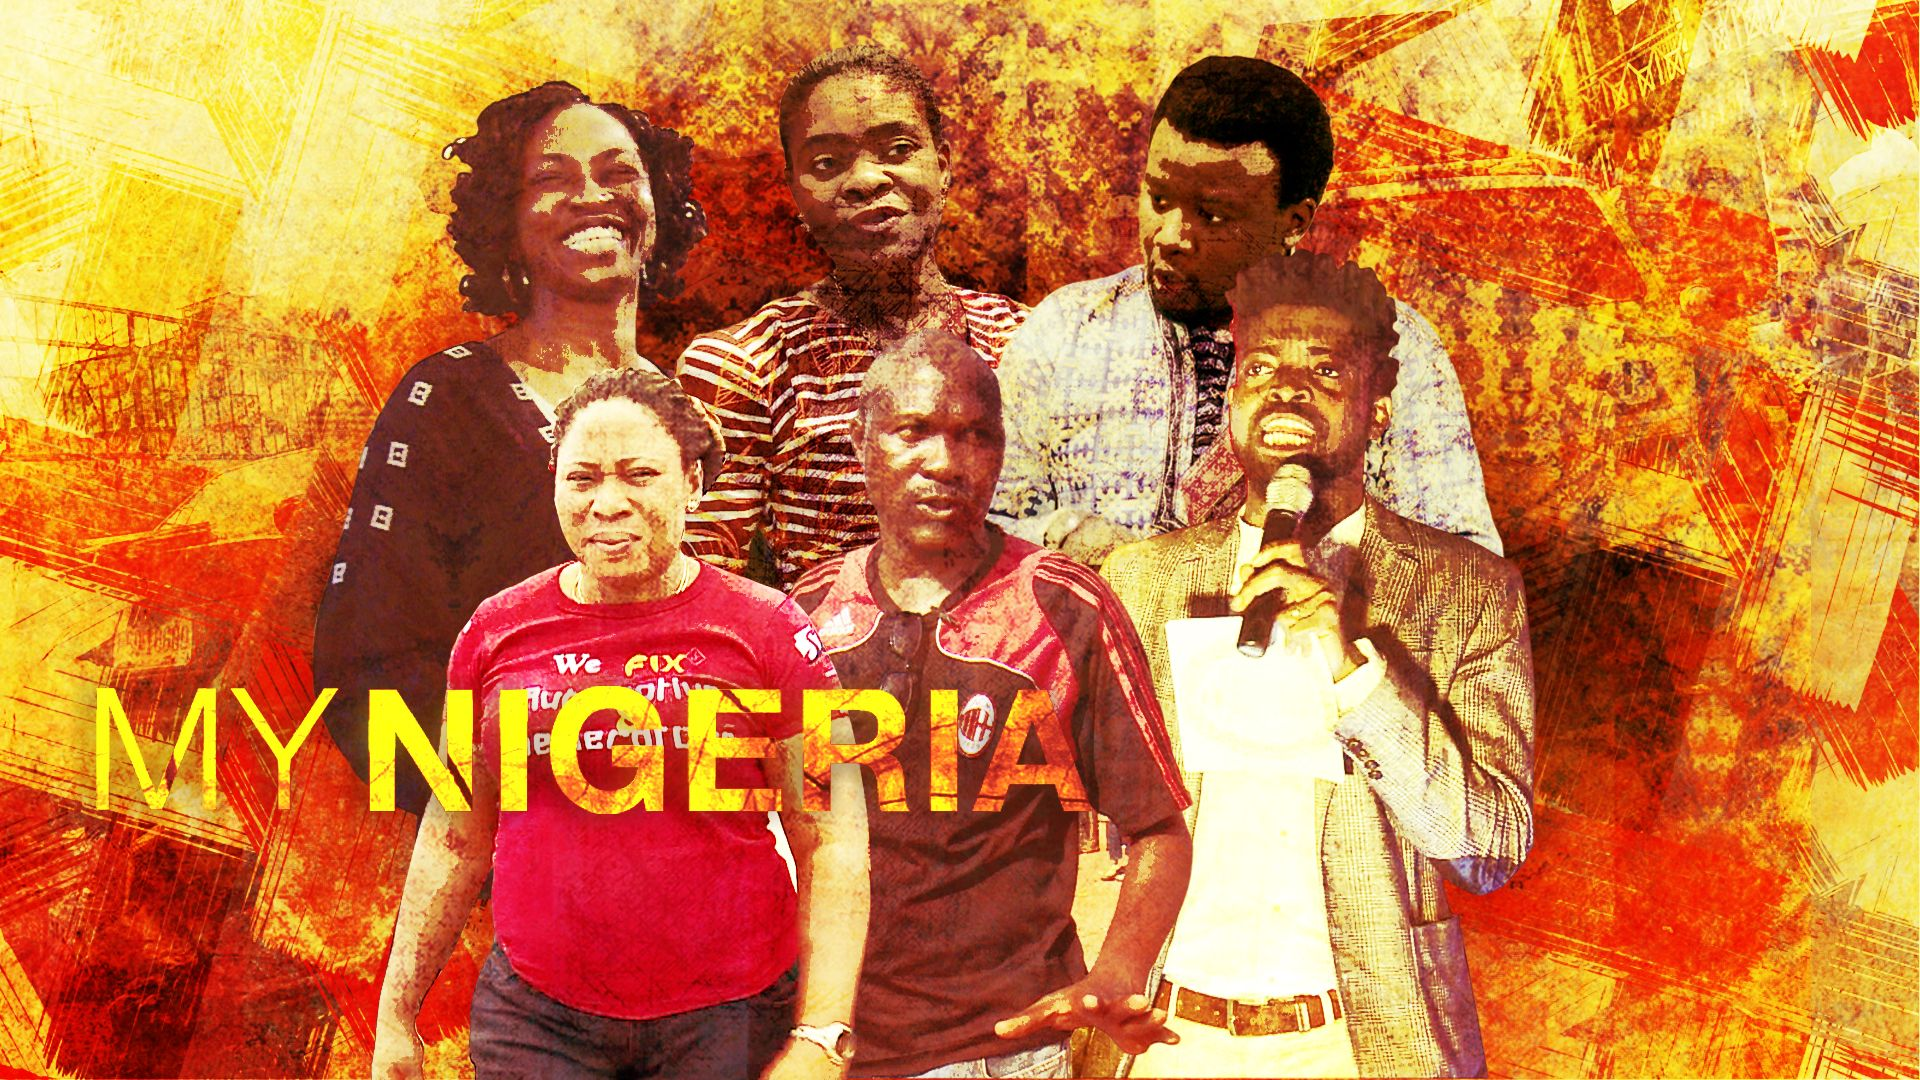 Filmmaker Brian Tilley talks about the making of the My Nigeria series and the idea behind it.